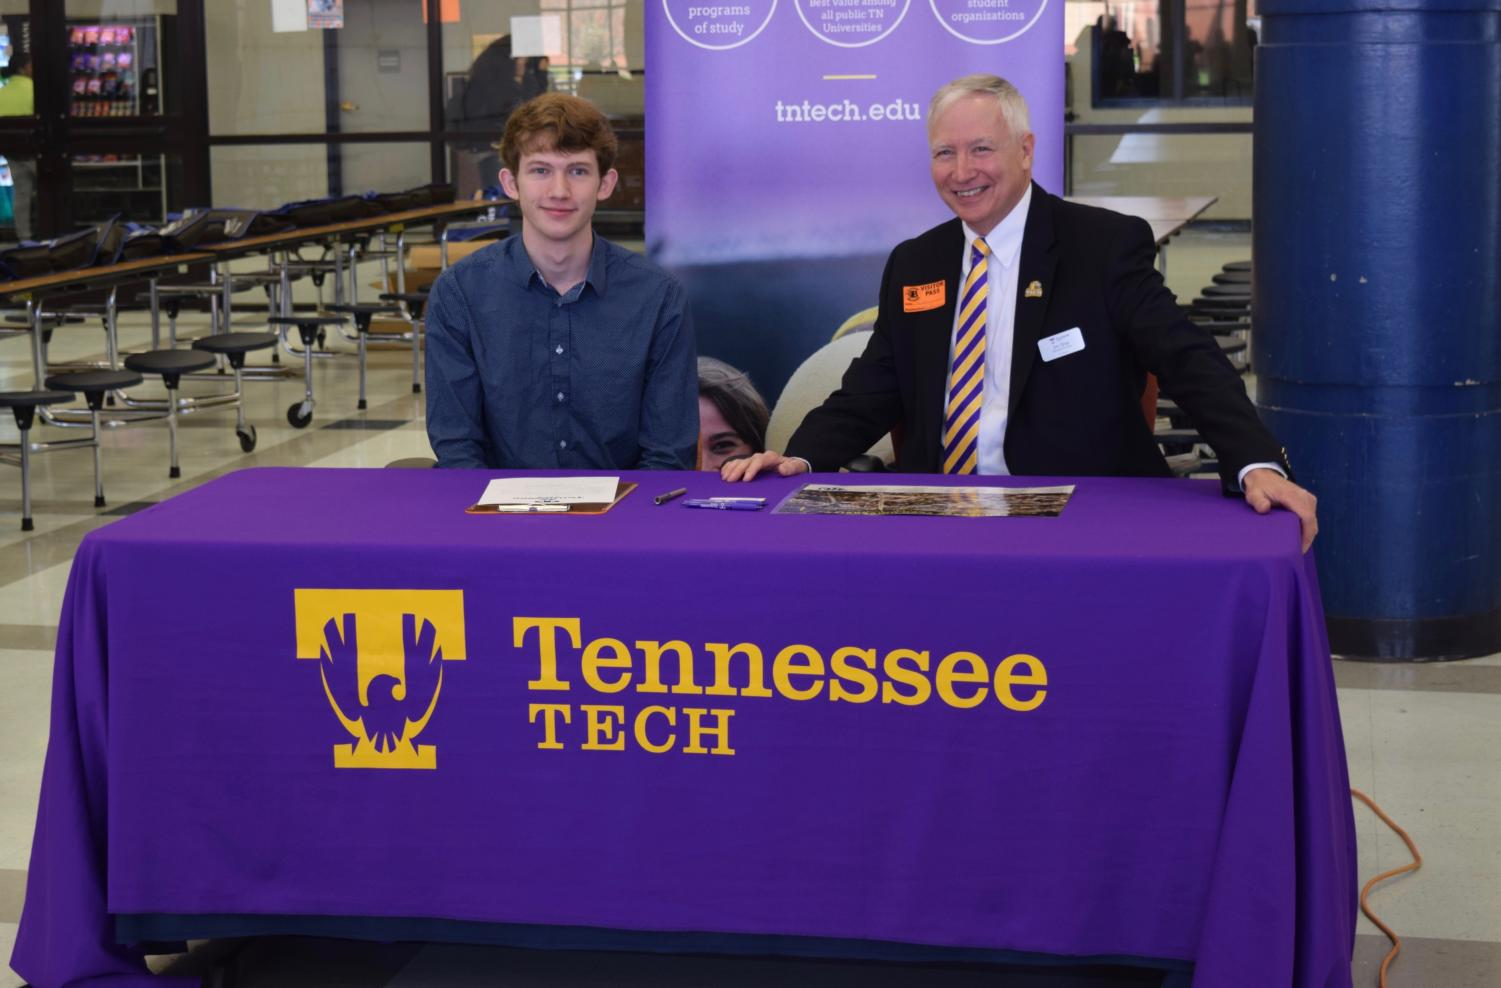 Nathan+Farrington+will+attend+Tennessee+Tech+in+the+fall.